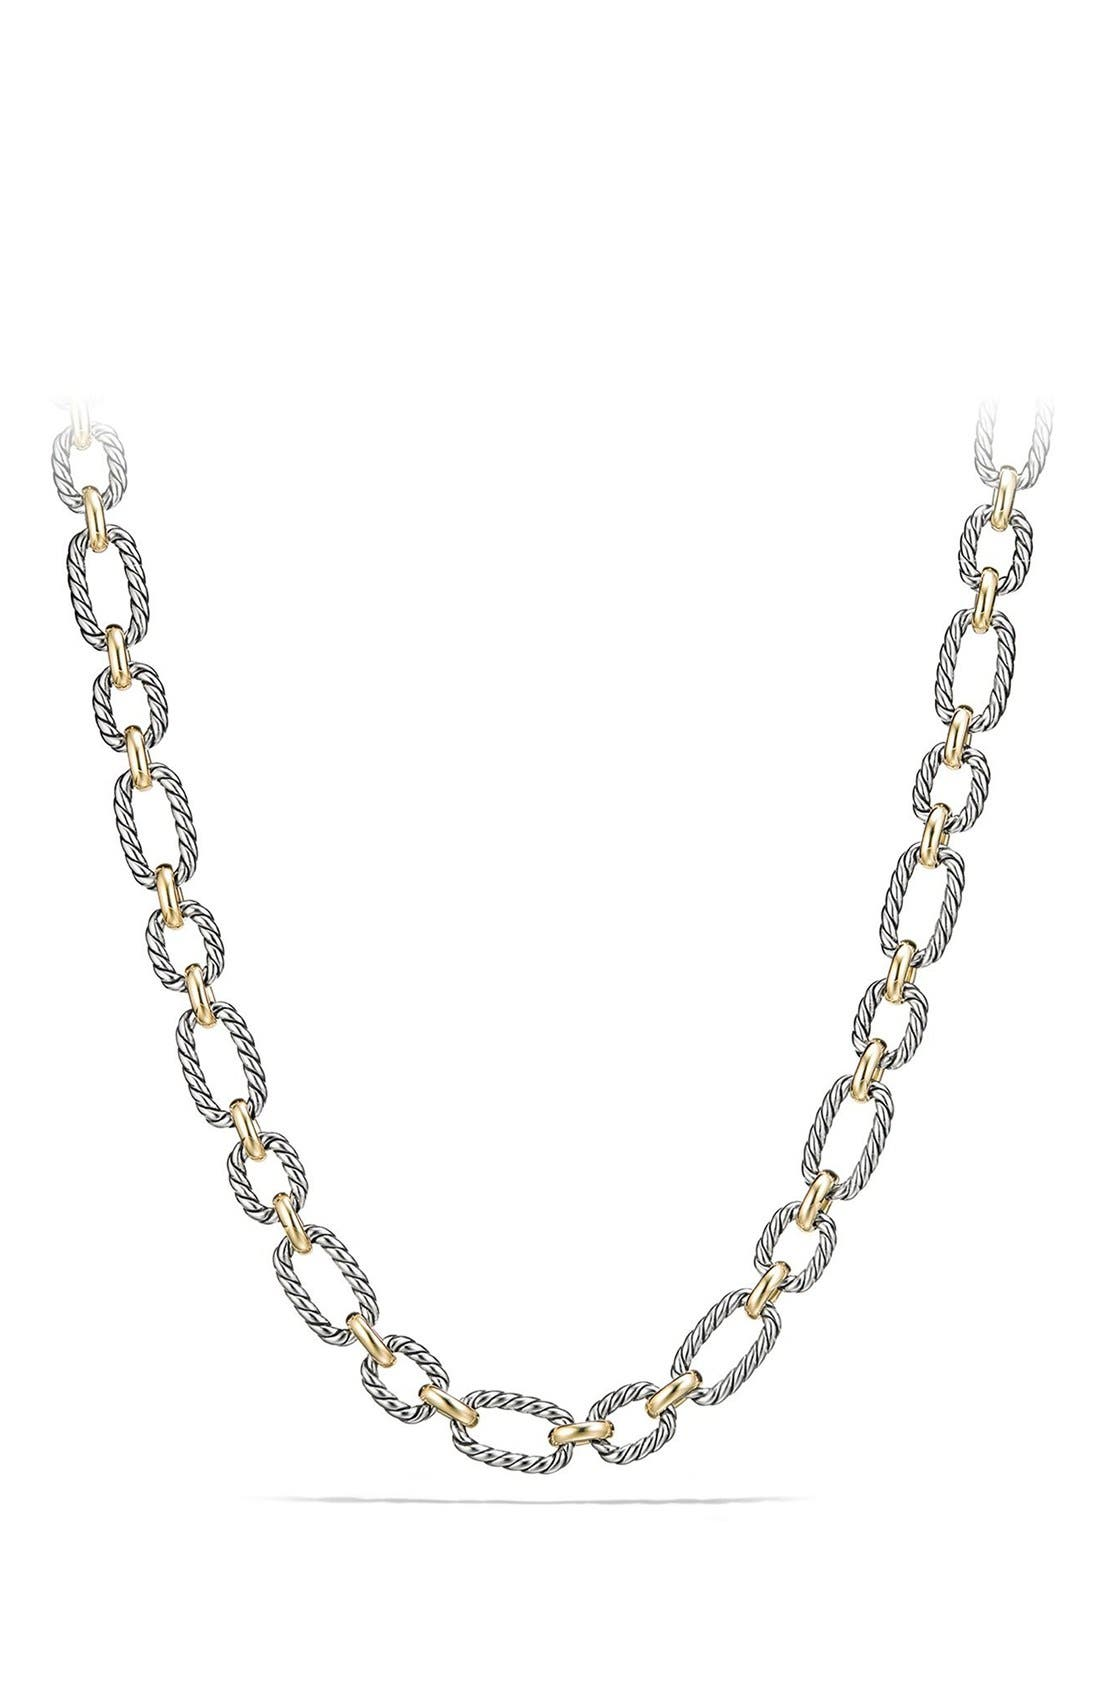 Cushion Link Necklace with Blue Sapphires,                         Main,                         color, Silver/ Gold/ Blue Sapphire